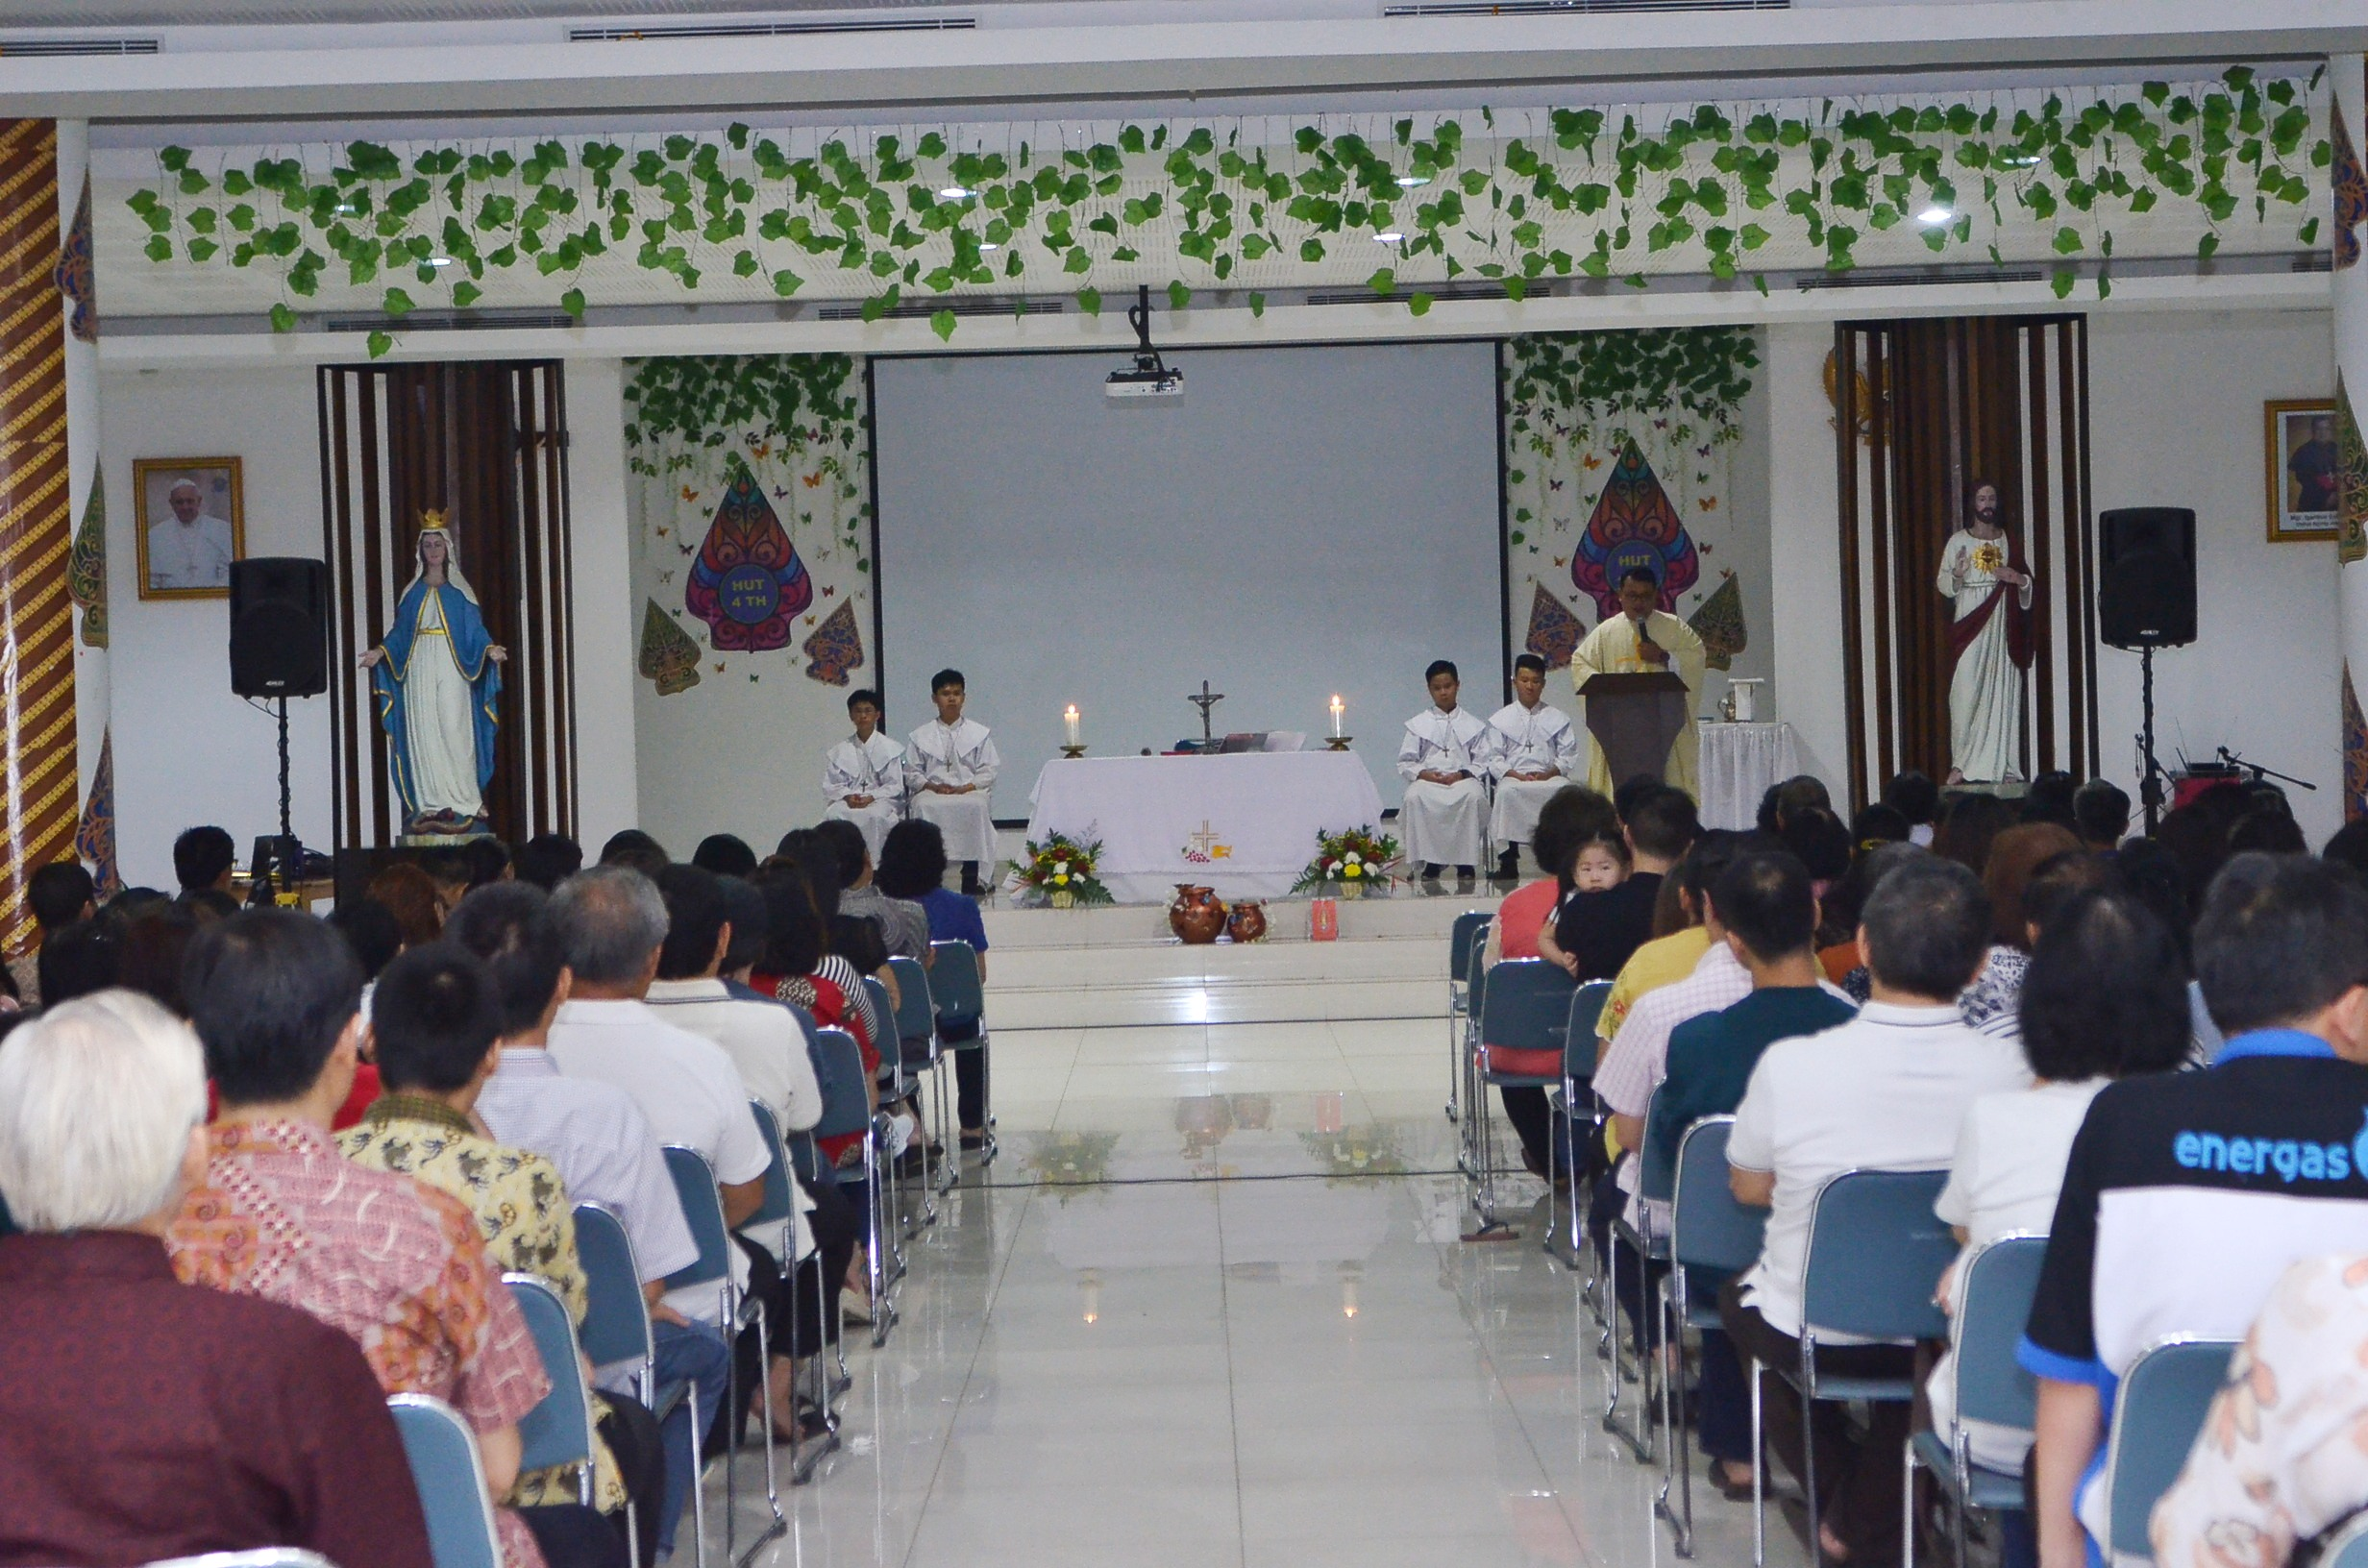 HUT Ke 4 PDPKK SMI Grow To Her In Christ Gereja Santa